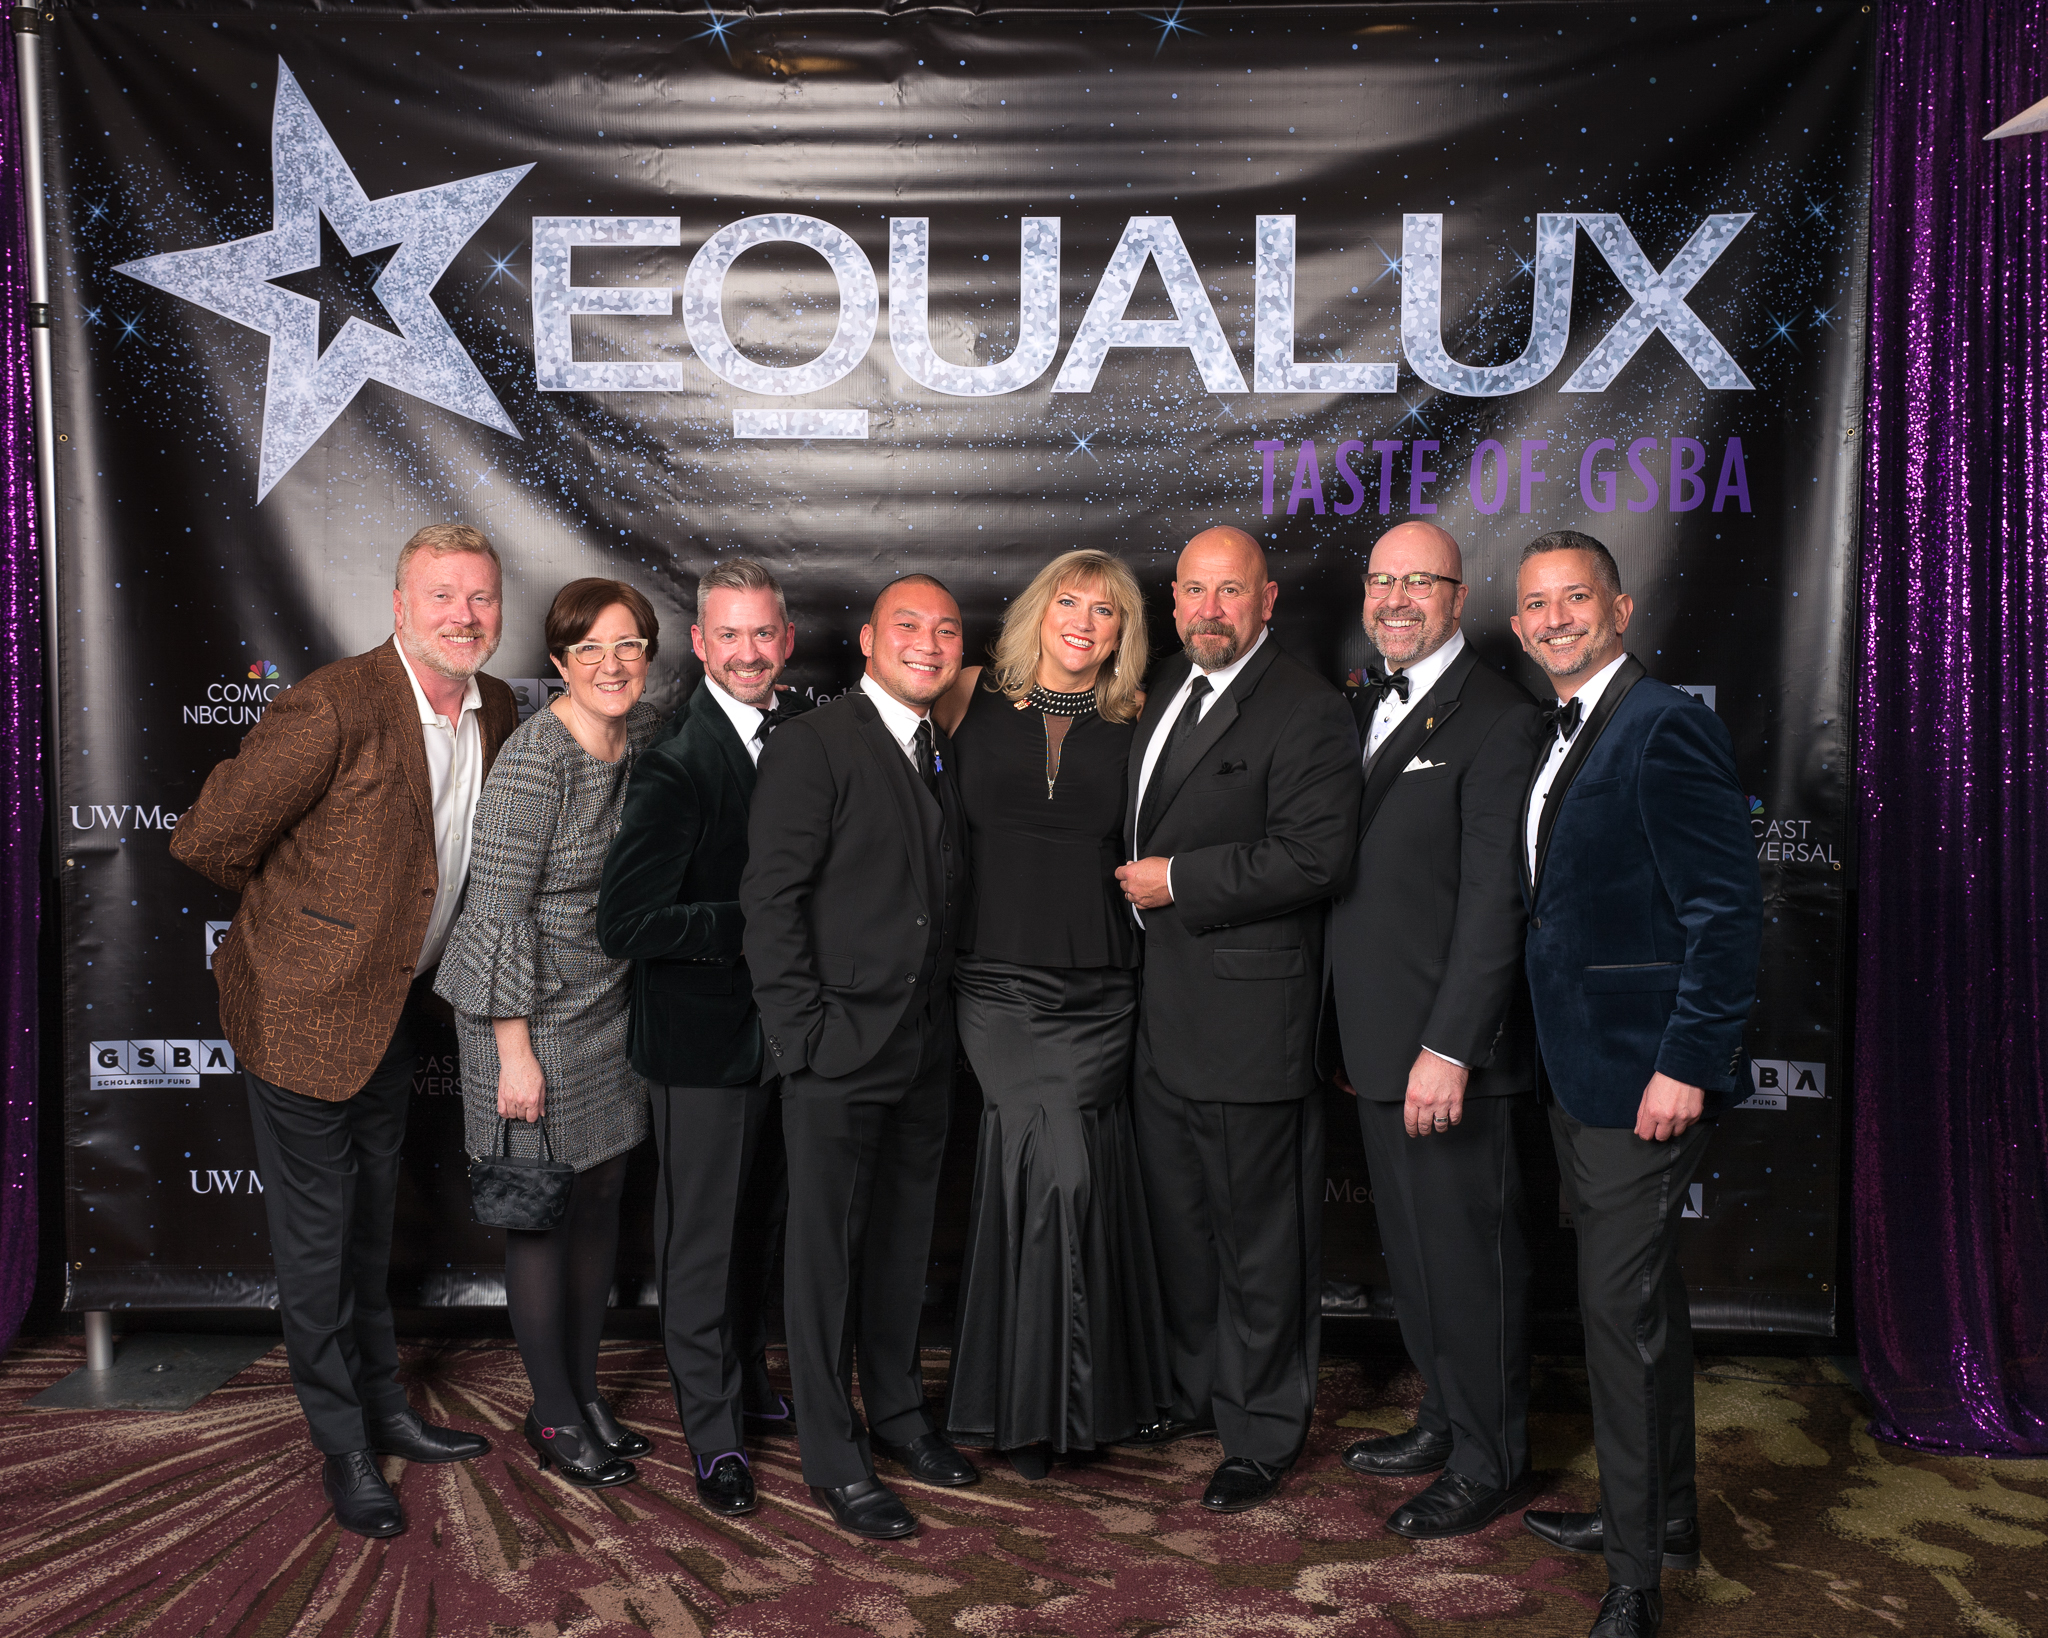 111718_GSBA EQUALUX at The Westin Seattle (Credit- Nate Gowdy)-42.jpg